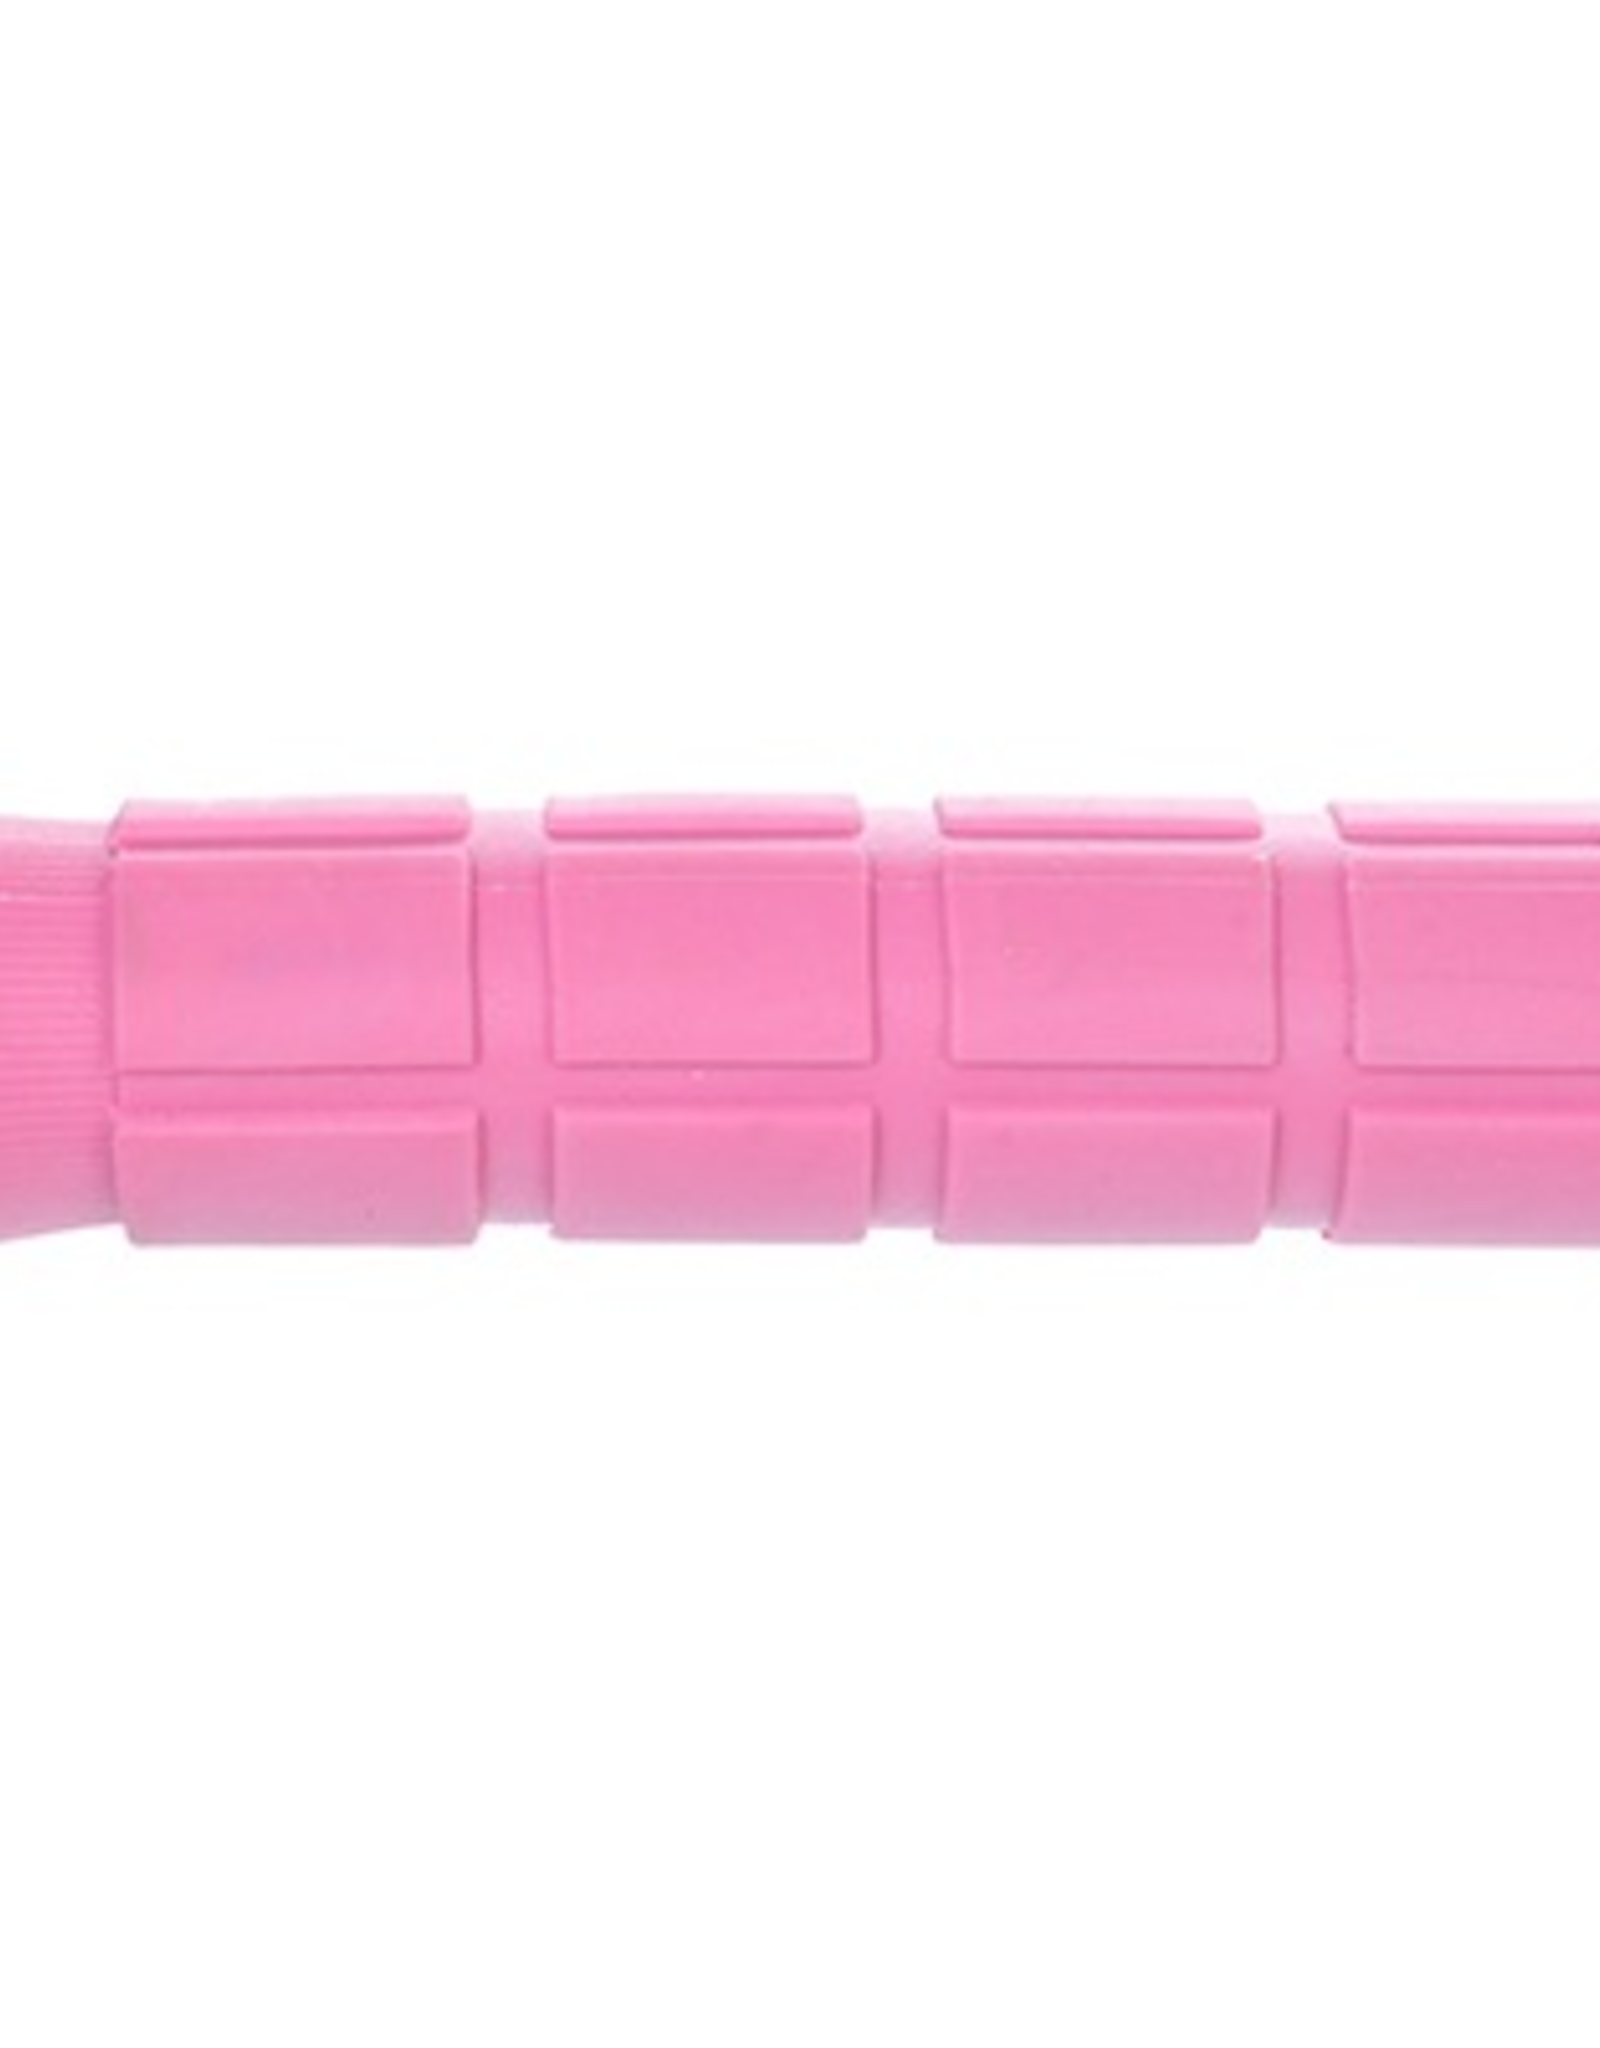 SunLite Classic Mountain Grips Pink